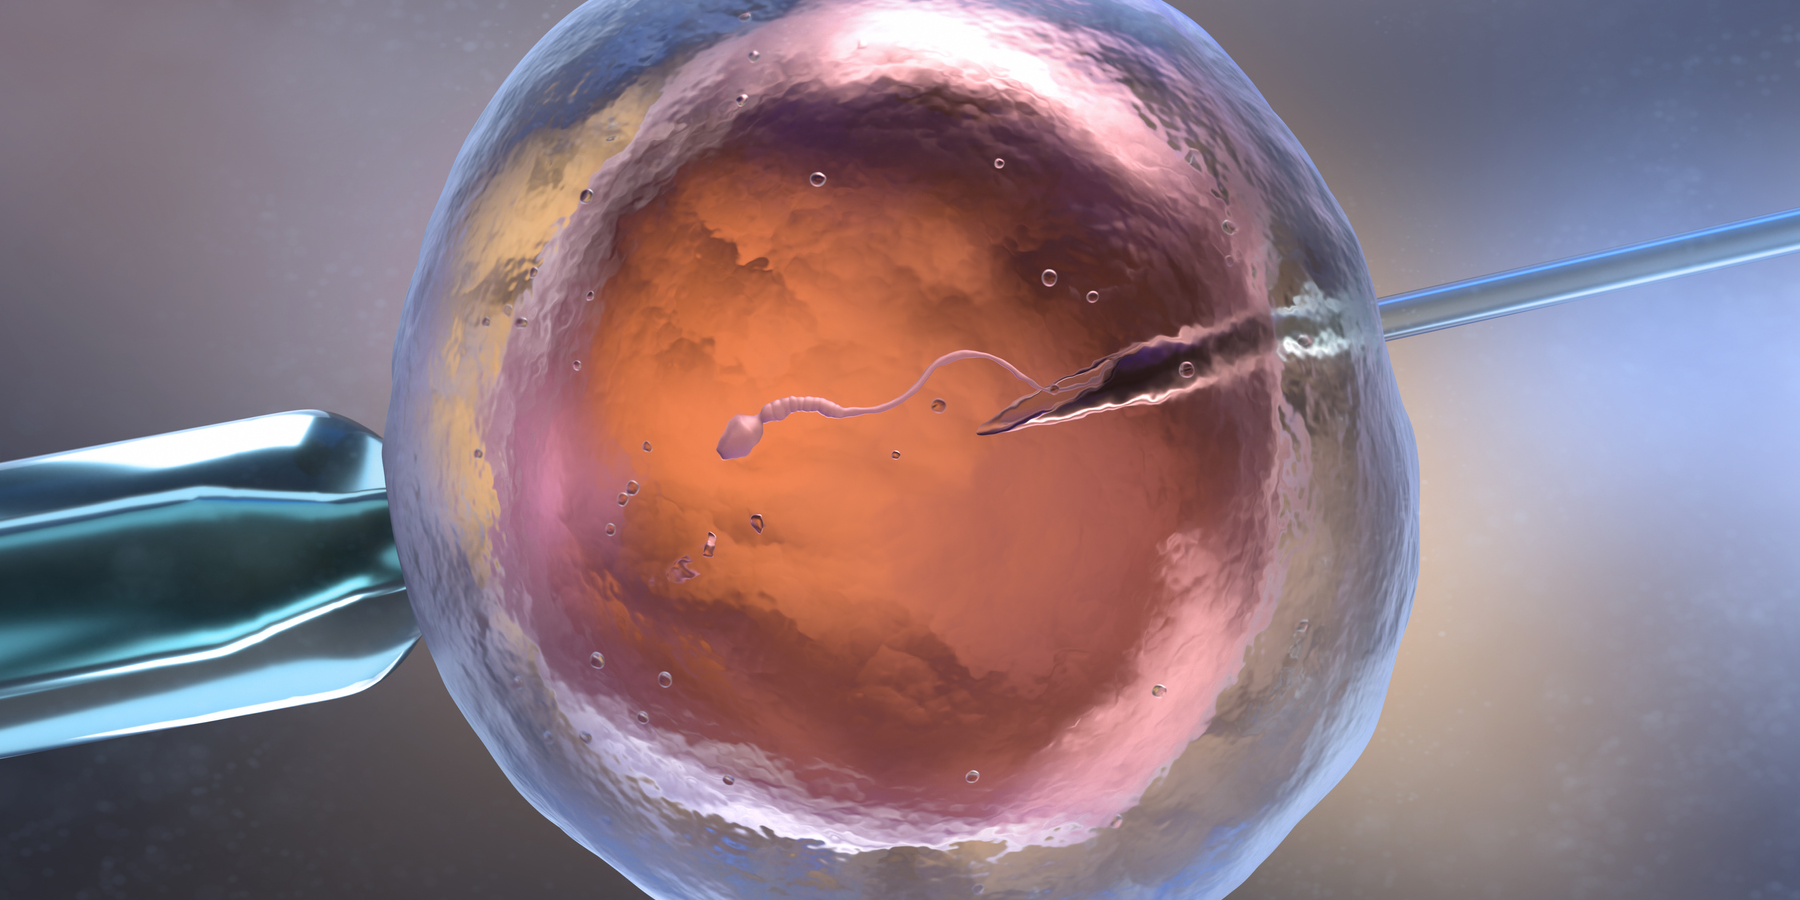 AI System Developed to Help Better Select Embryos for Implantation